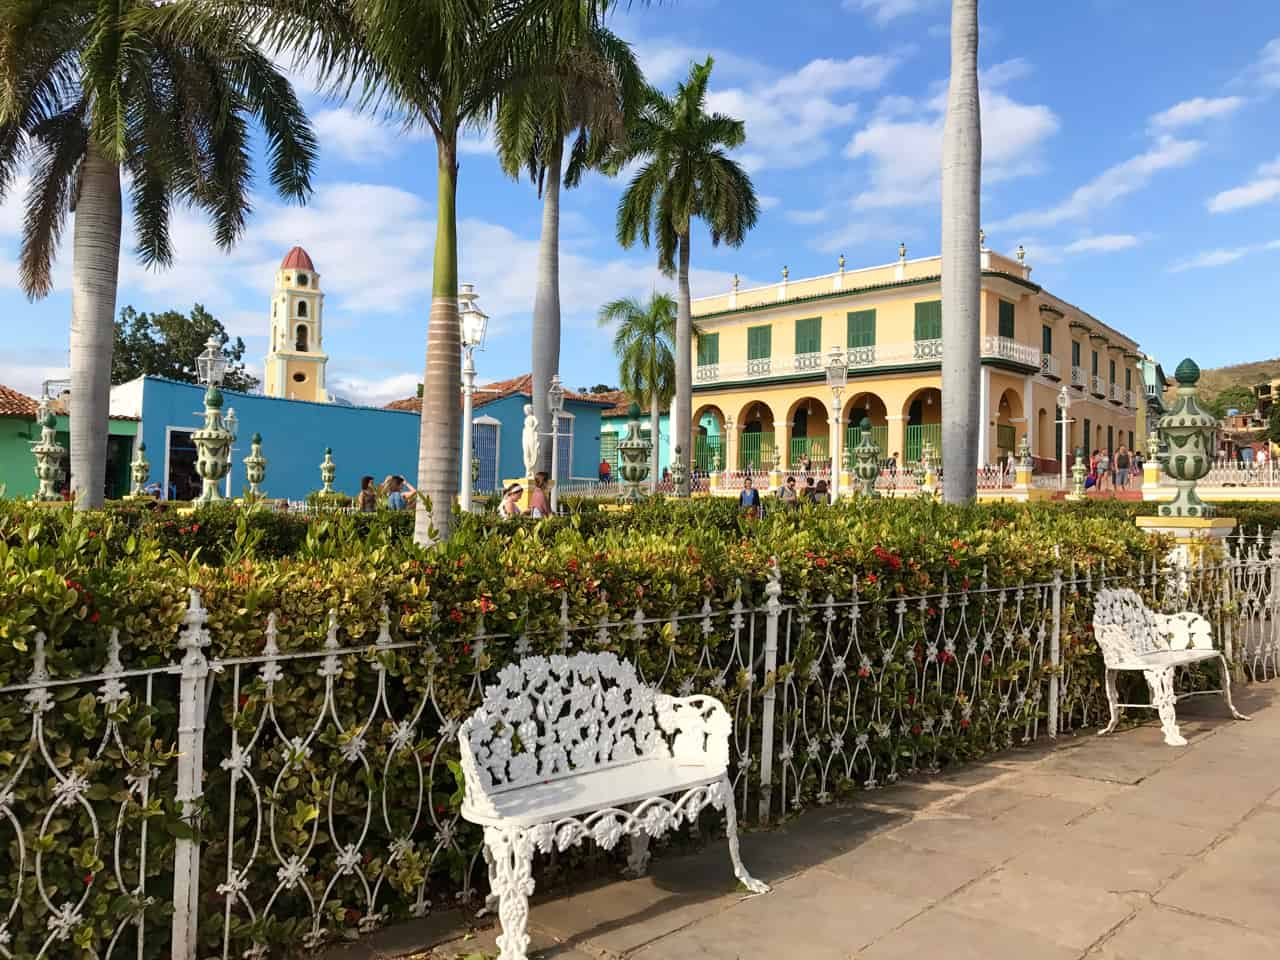 Our two weeks in Cuba includes three days in Trinidad, starting in historic Plaza Mayor.